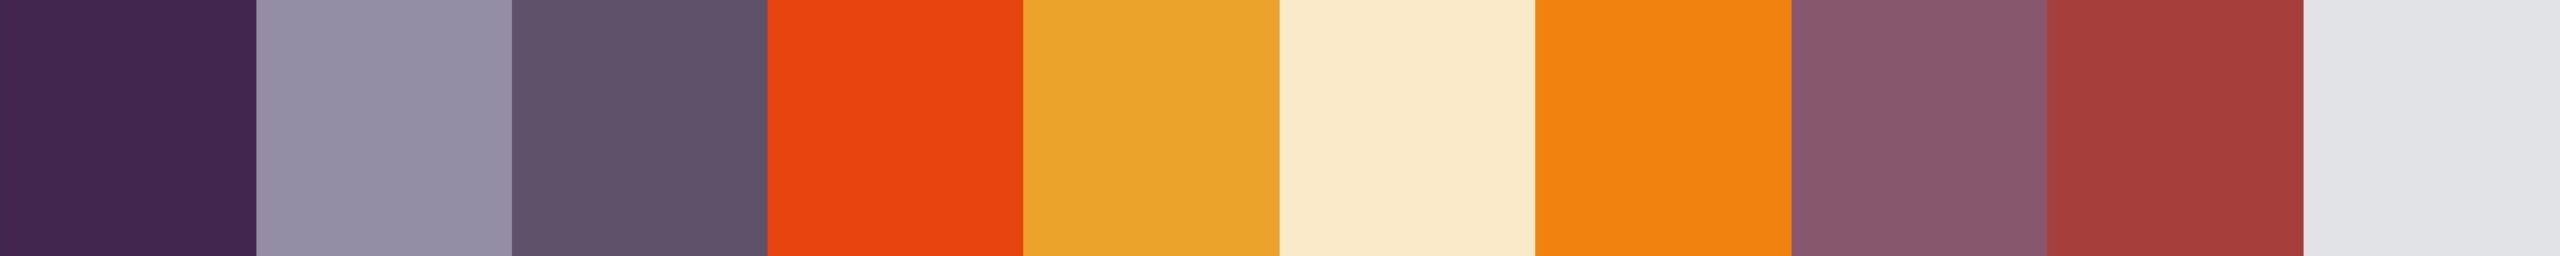 562 Delia Color Palette